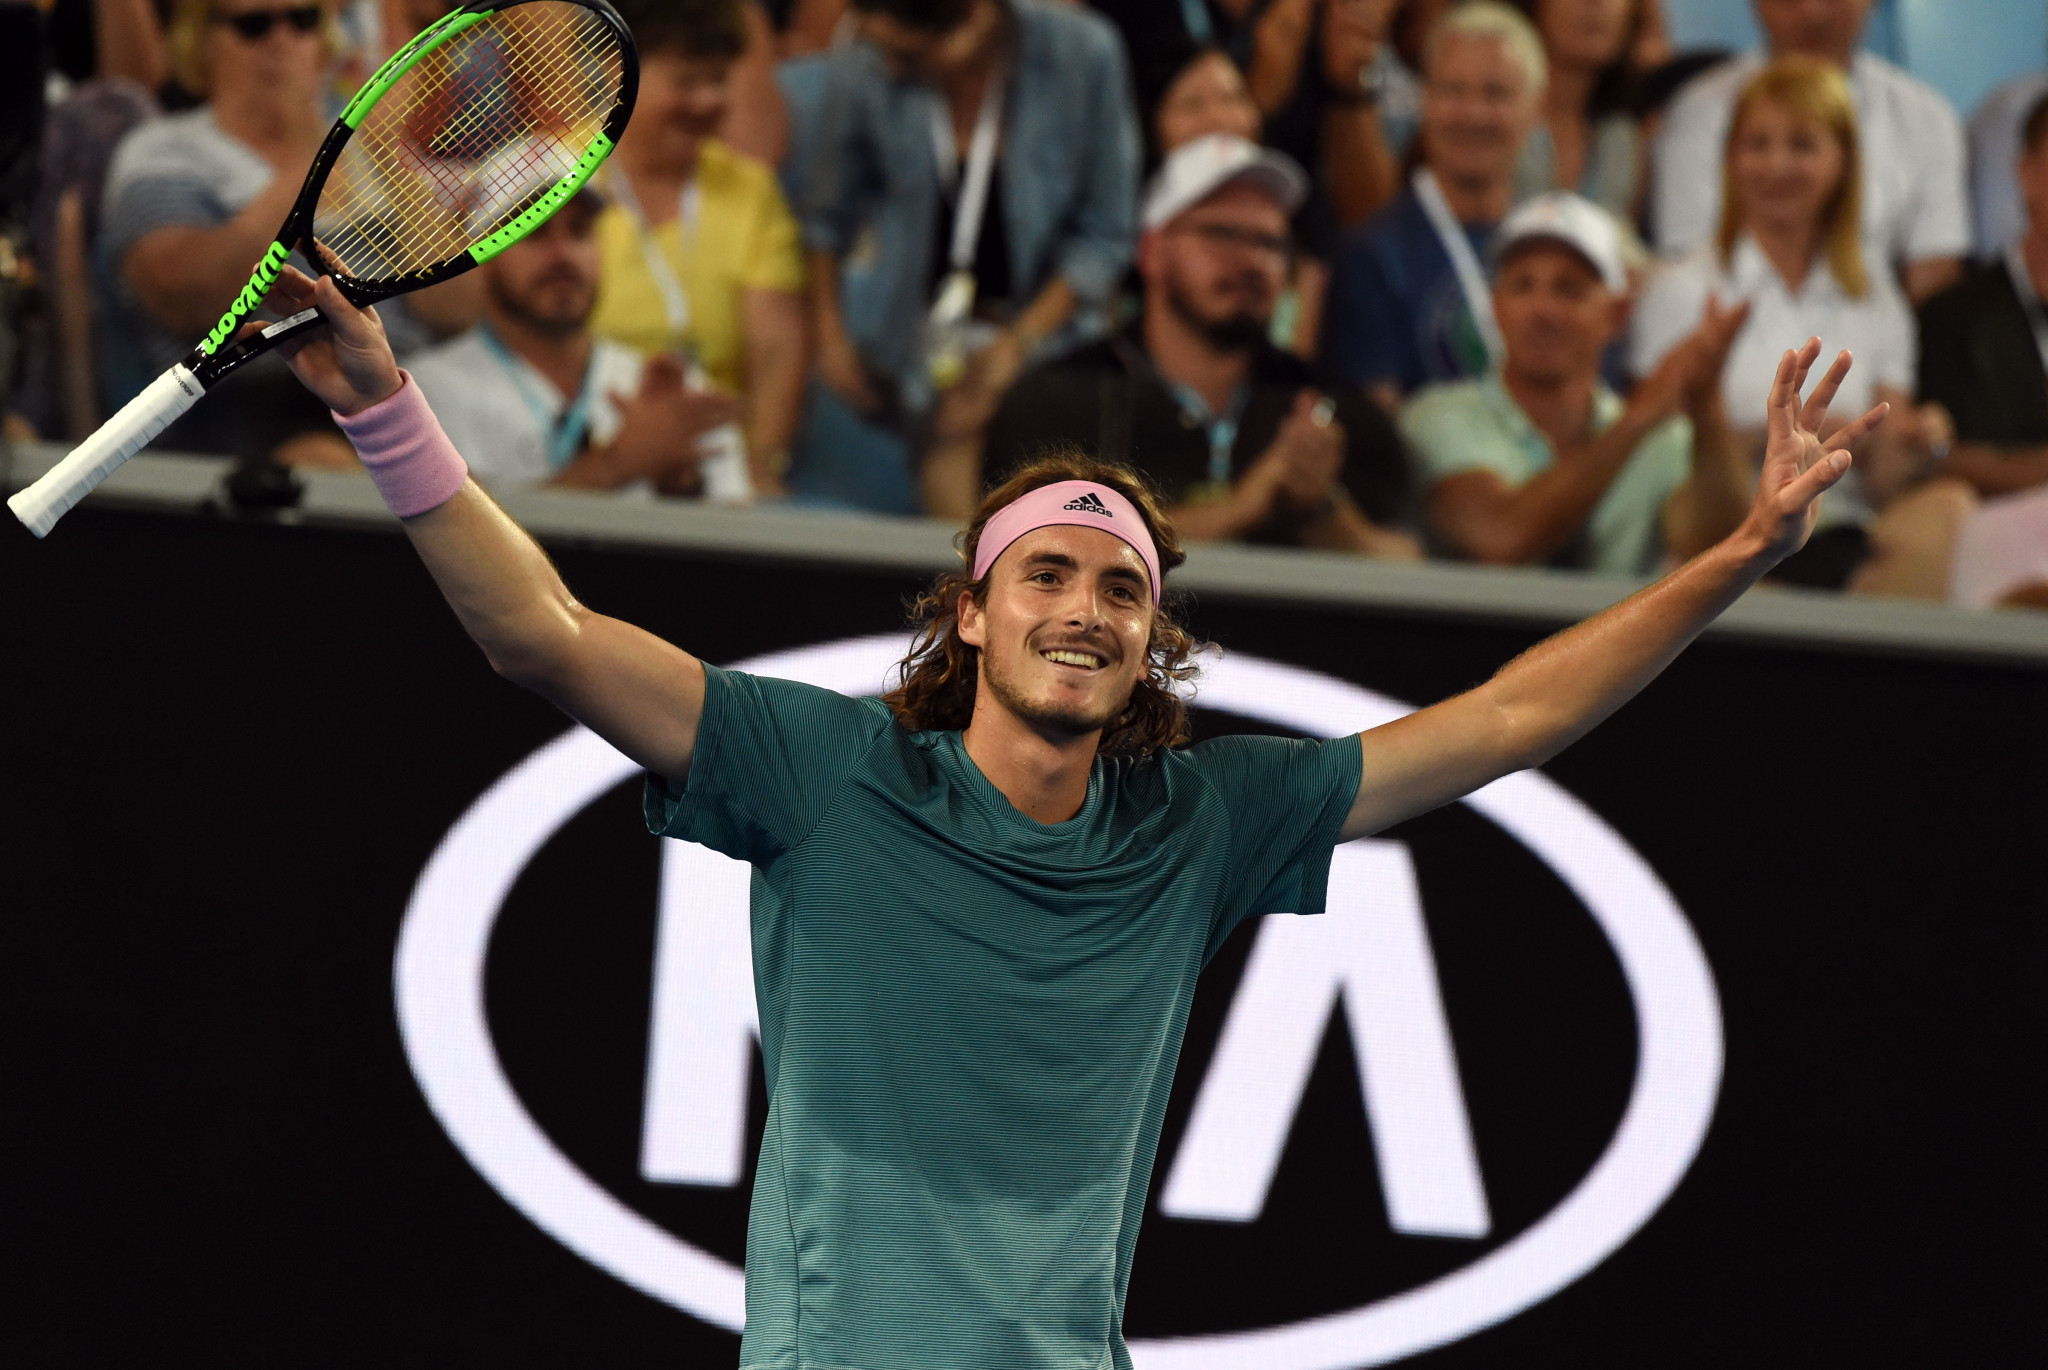 He will now face talented Greek youngster Stefanos Tsitsipas ©Getty Images